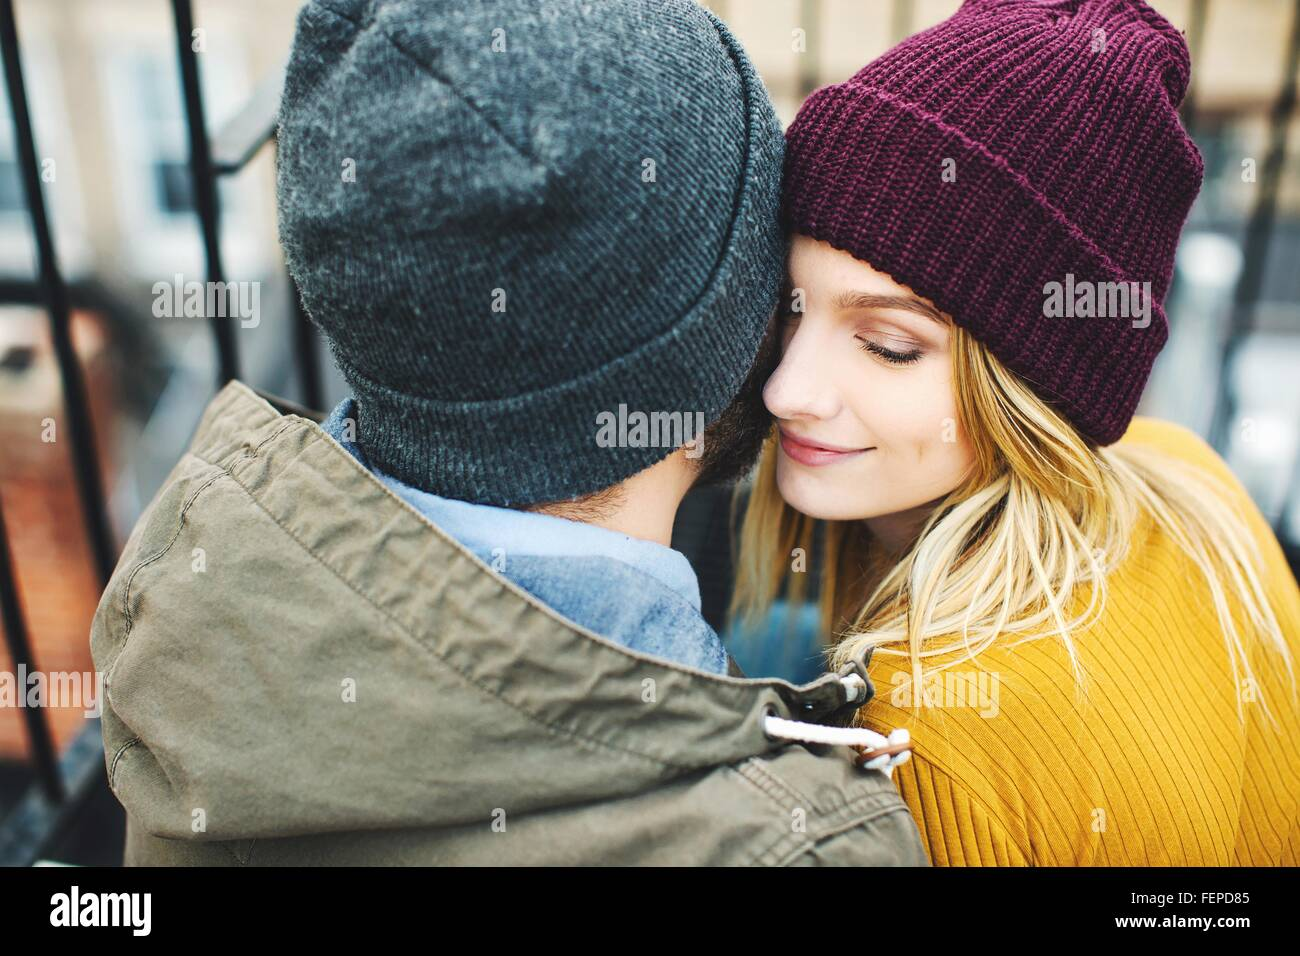 Romantic young couple wearing knitted hats sitting on stairway - Stock Image